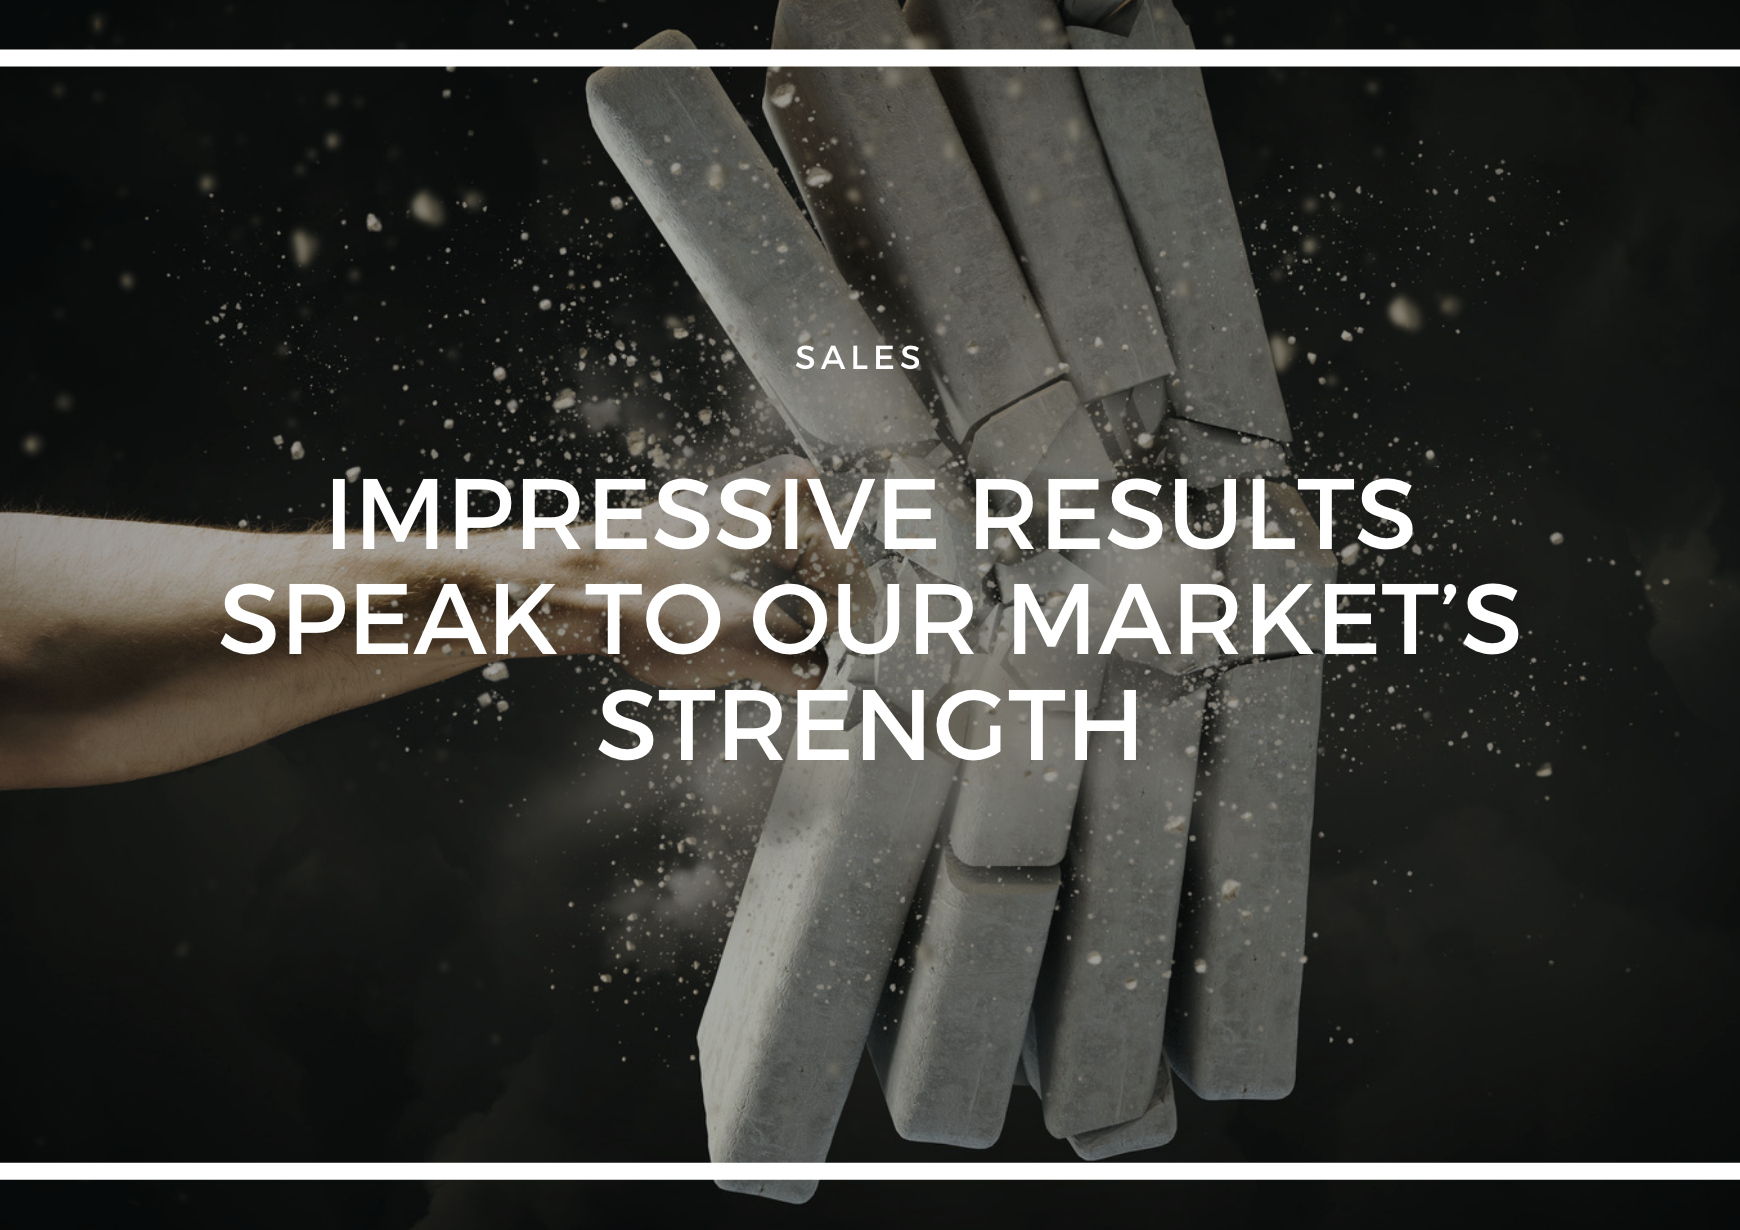 IMPRESSIVE RESULTS SPEAK TO OUR MARKET'S STRENGTH